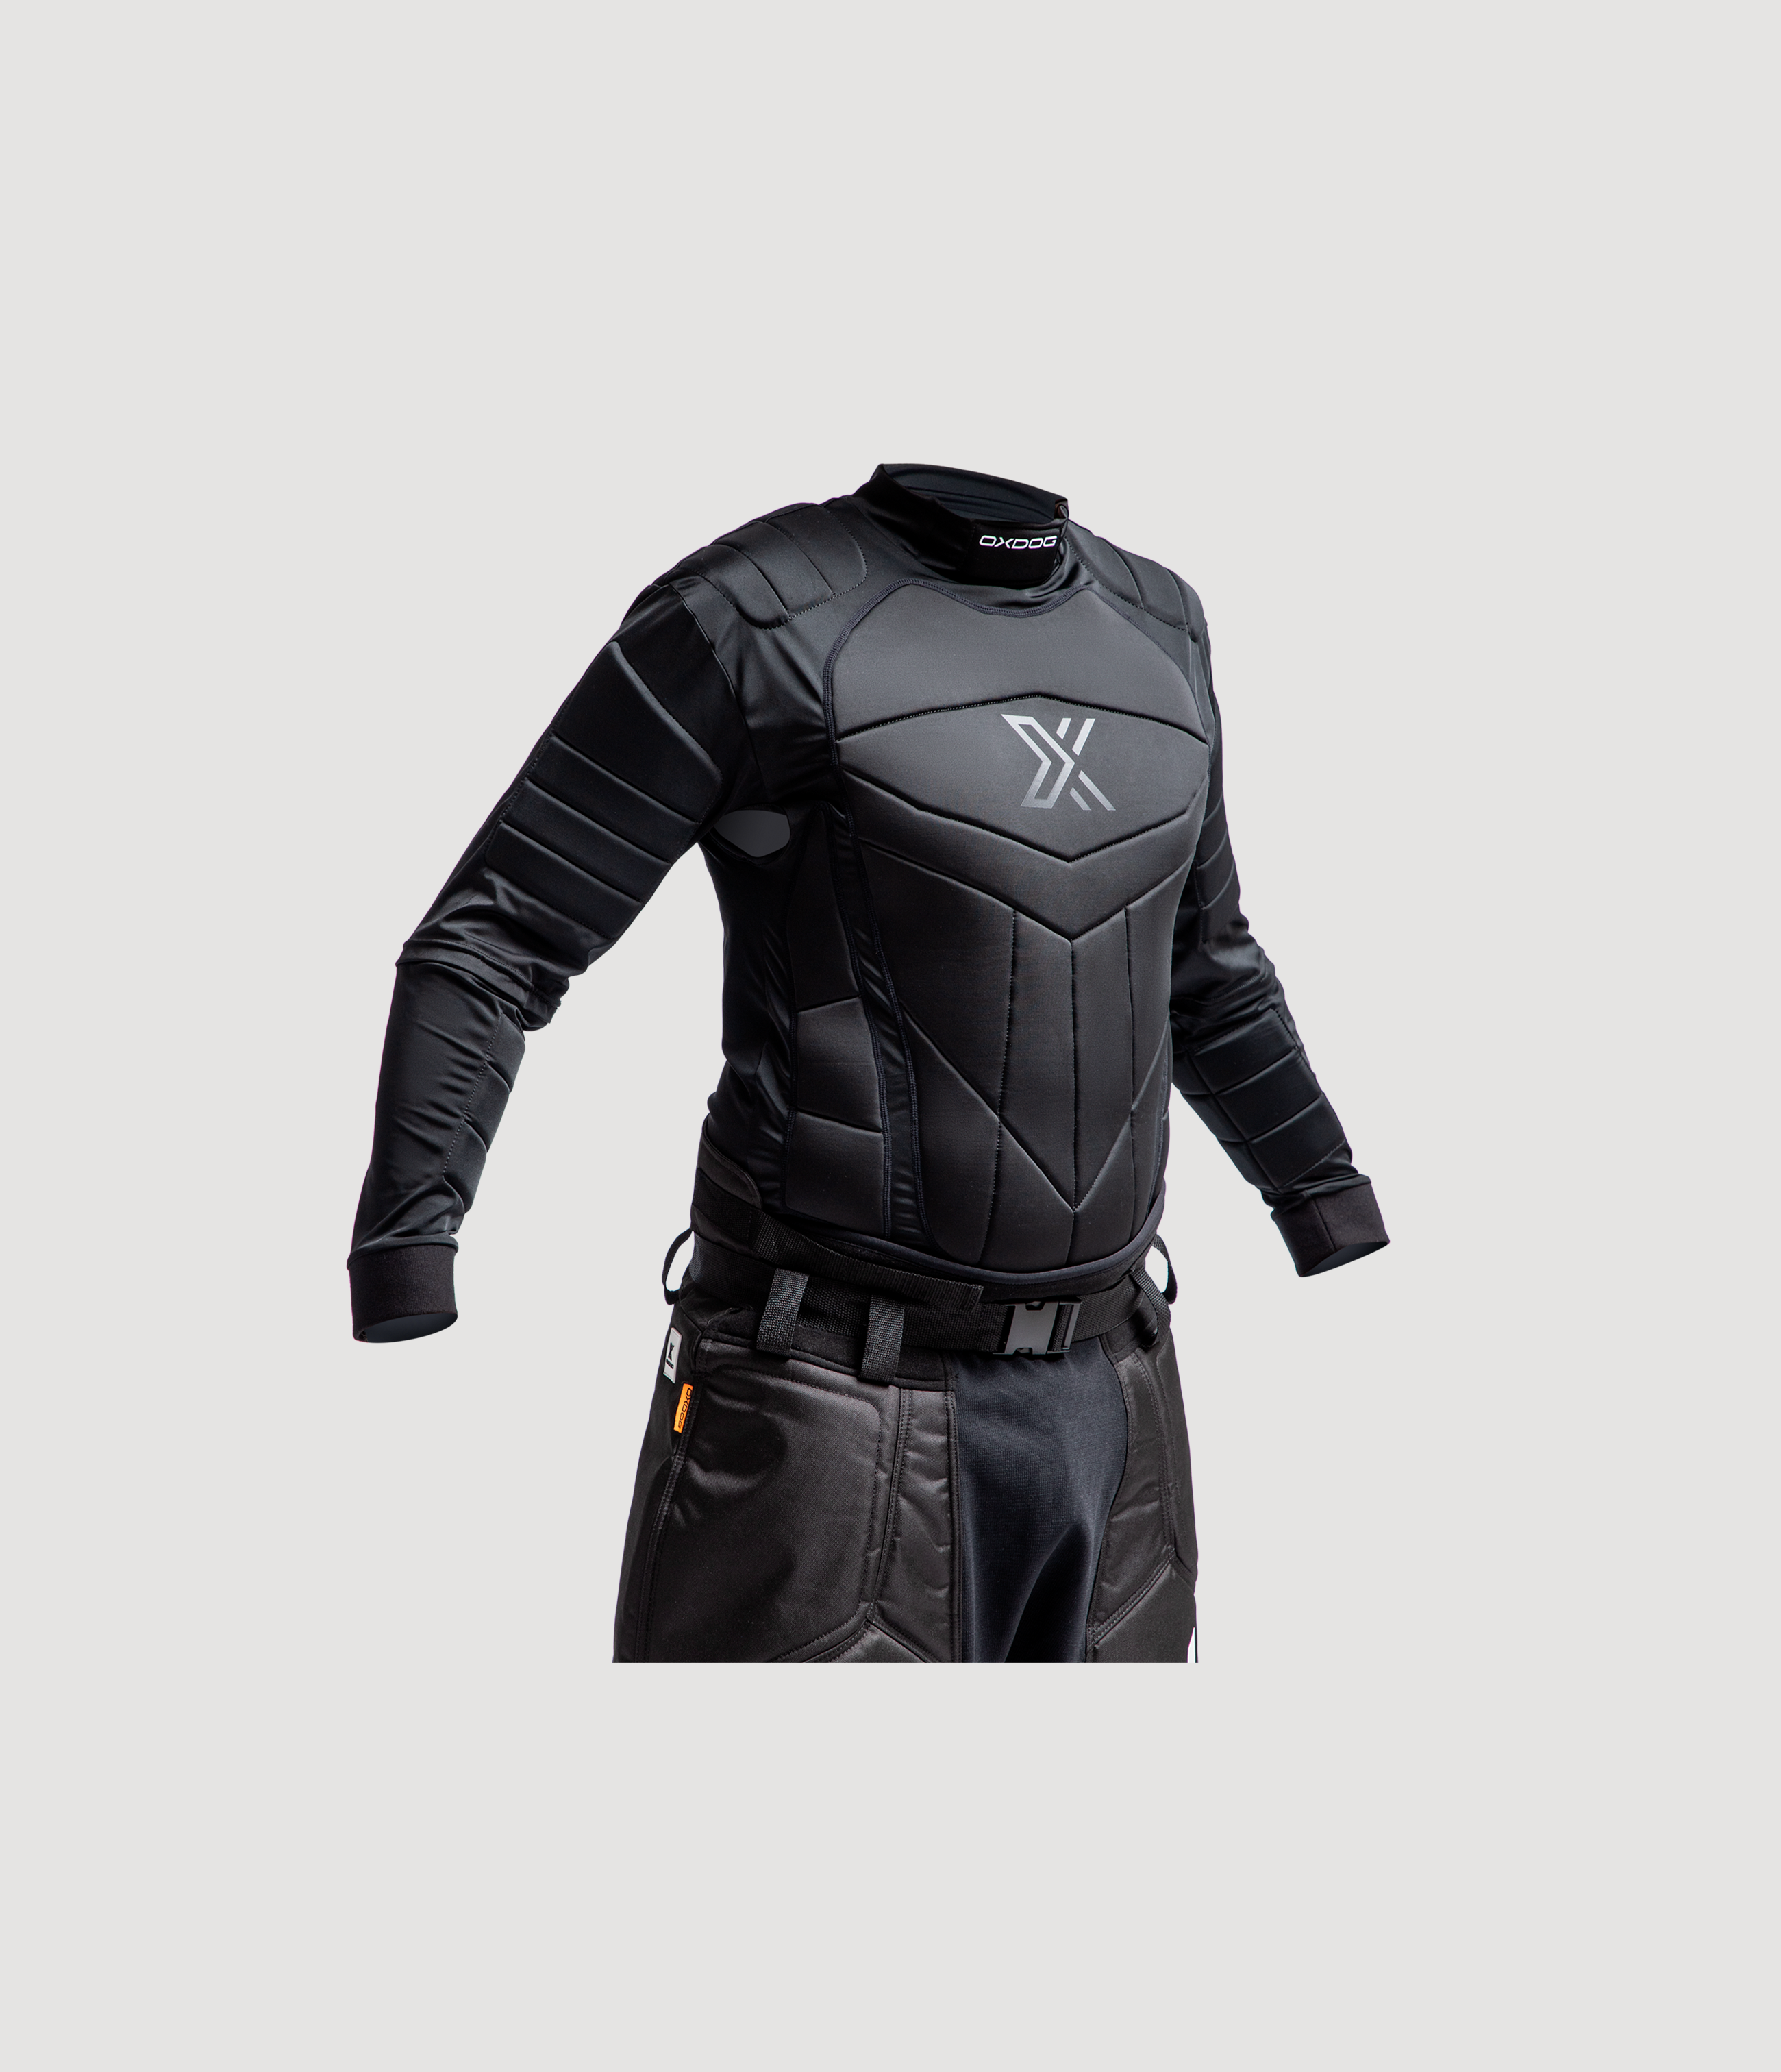 XGuard Protection Shirt Front